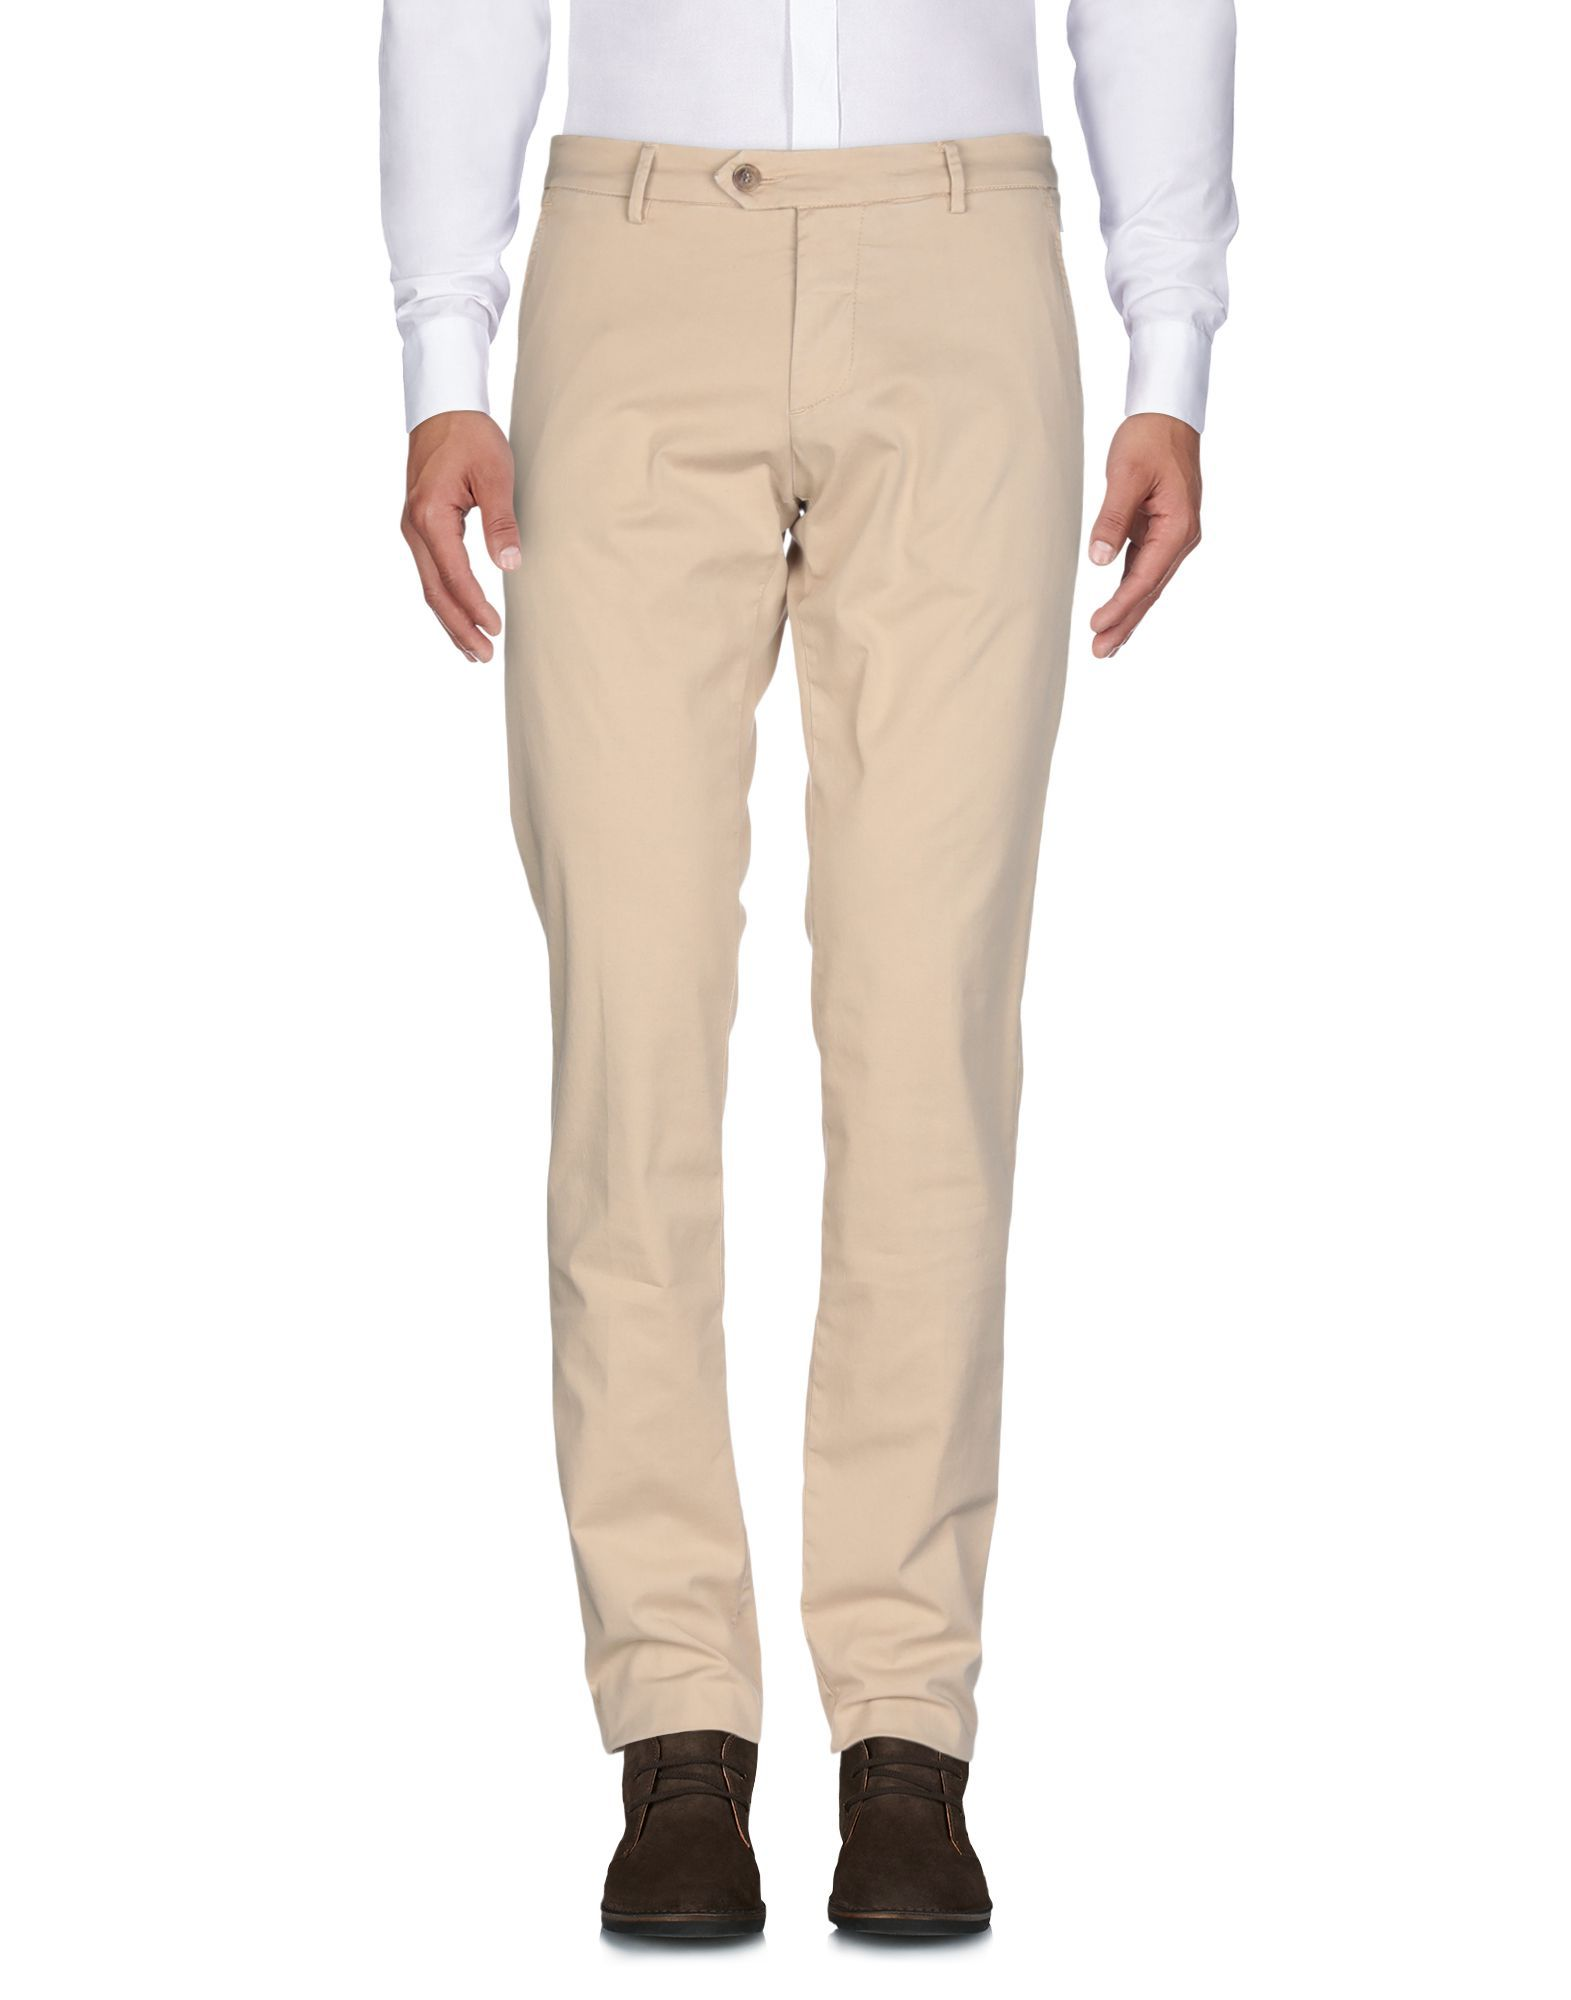 TROUSERS Man Roÿ Roger'S Sand Cotton